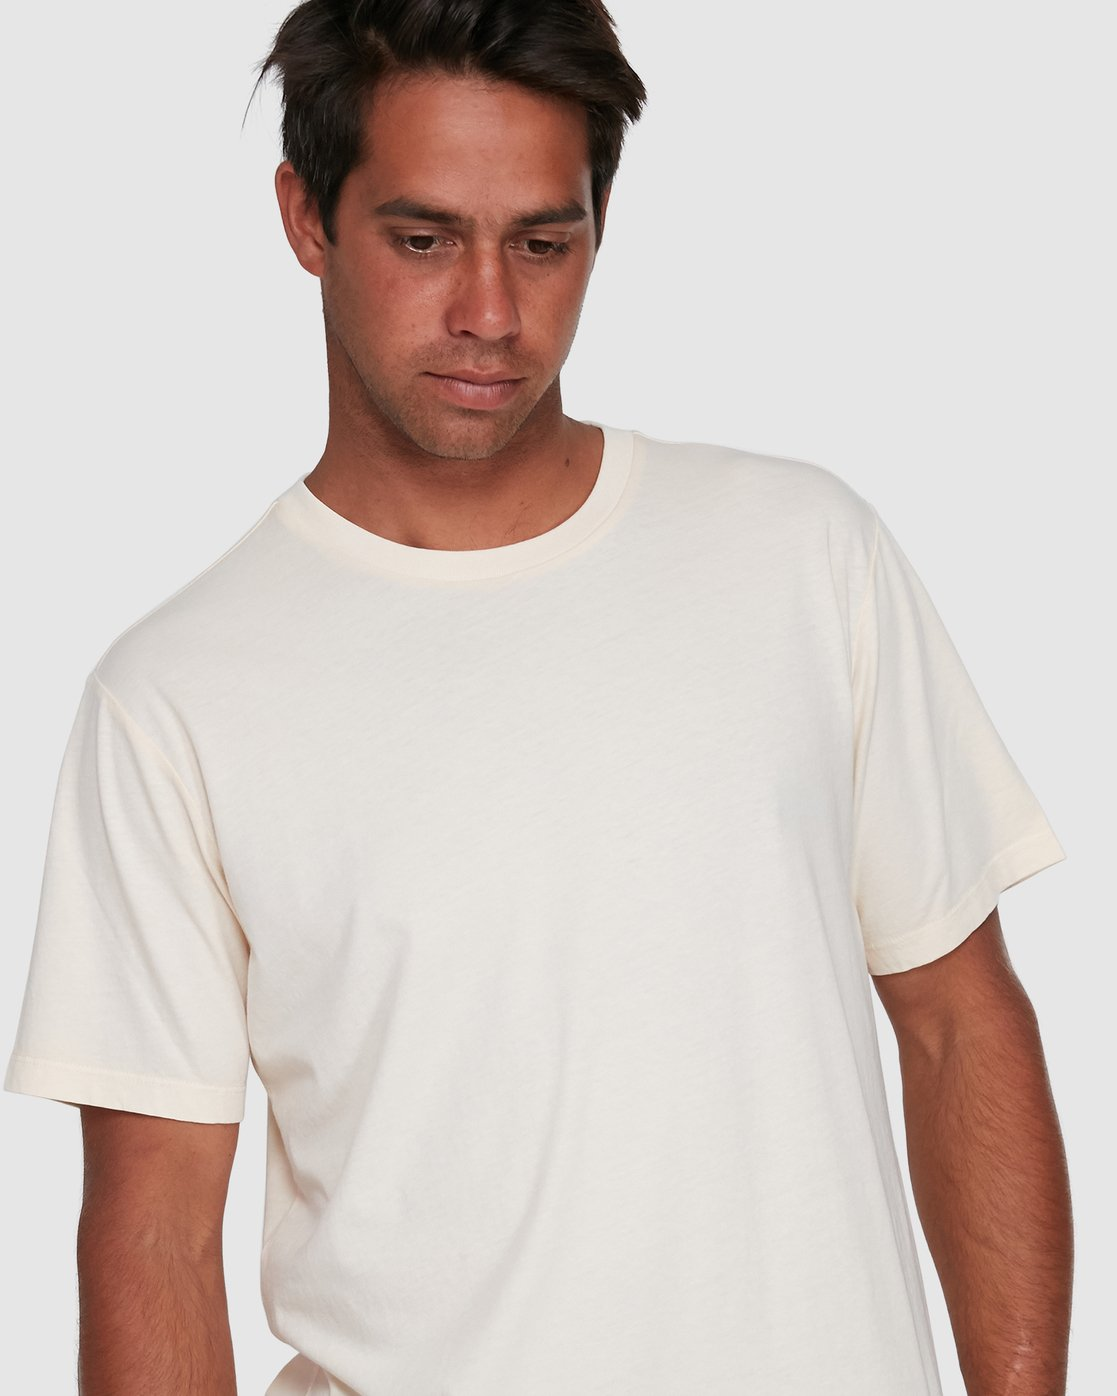 9 Rvca Washed Short Sleeve Tee White R105050 RVCA